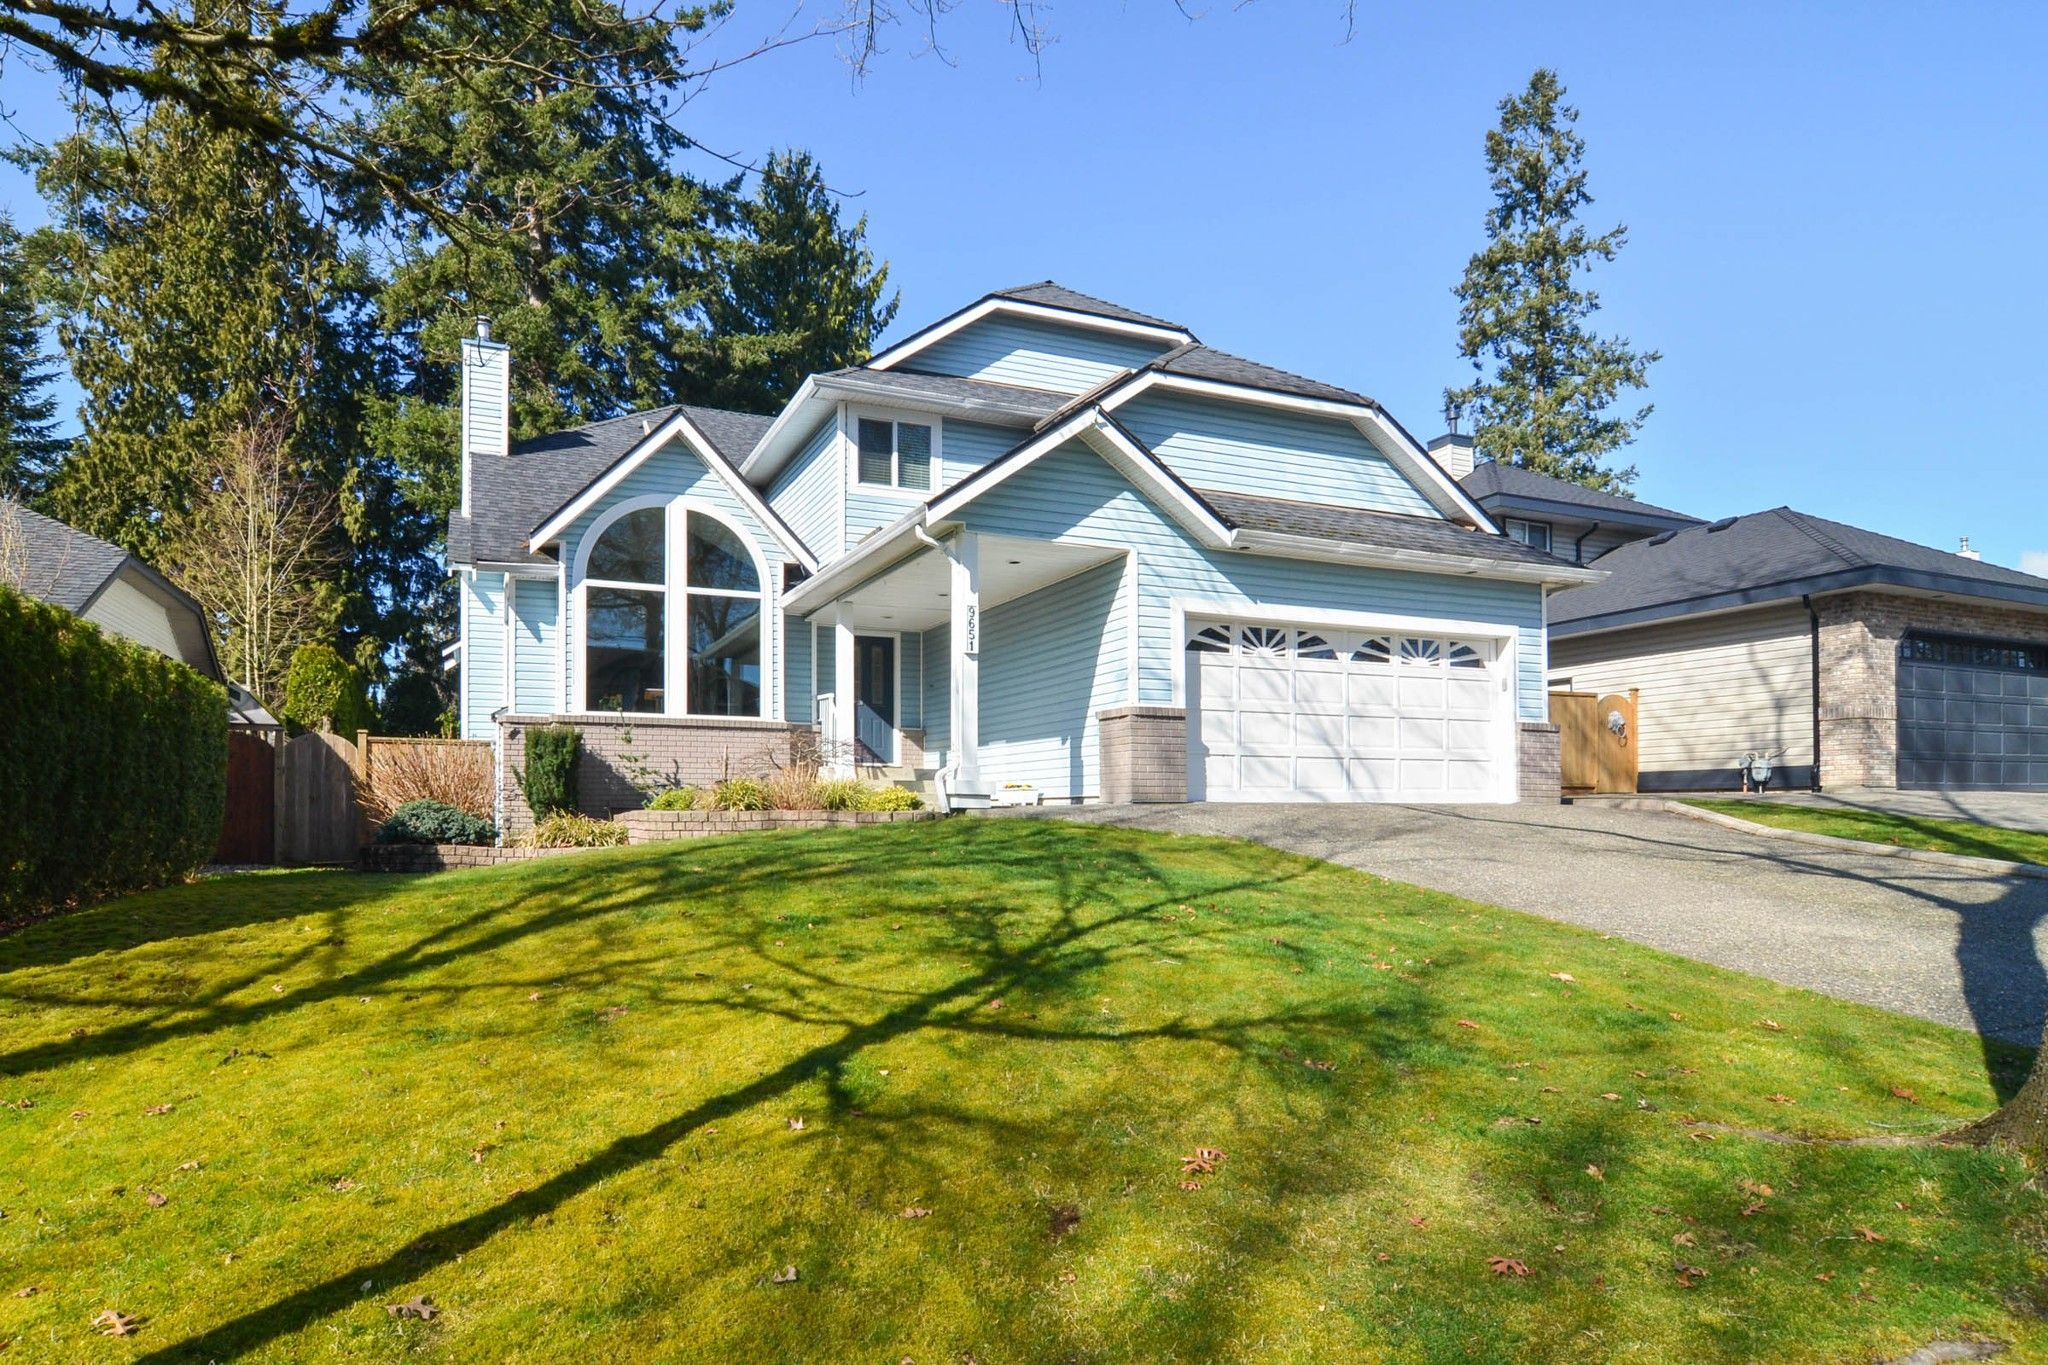 """Main Photo: 9651 206A Street in Langley: Walnut Grove House for sale in """"DERBY HILLS"""" : MLS®# R2550539"""